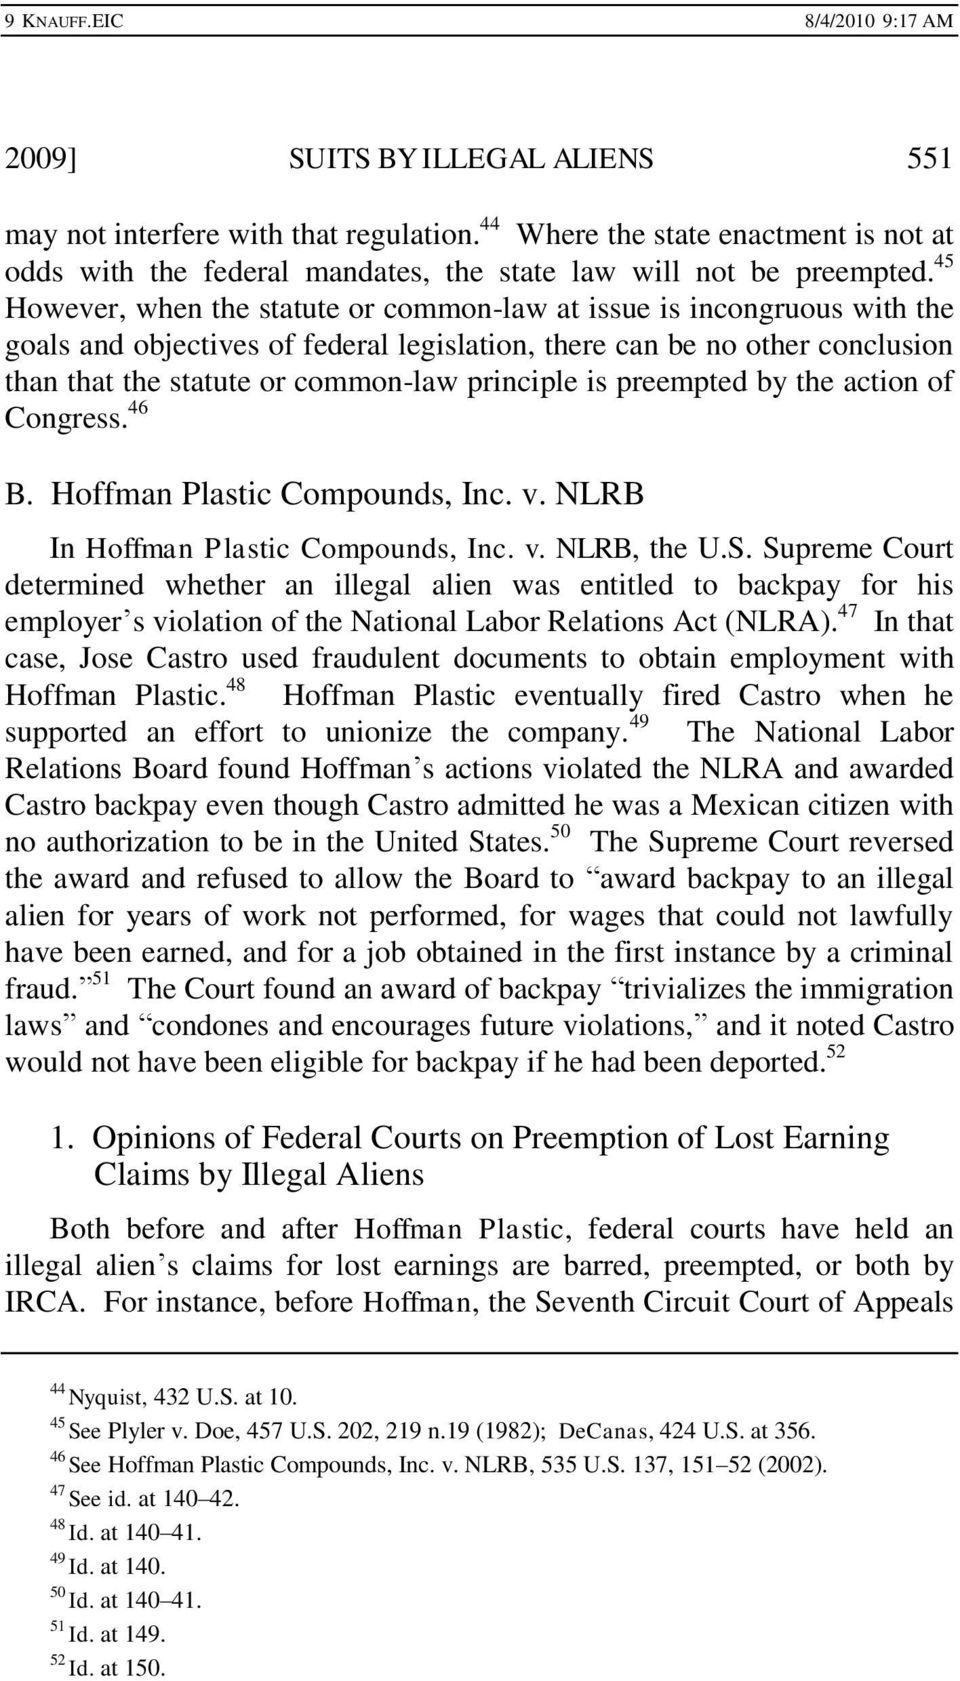 is preempted by the action of Congress. 46 B. Hoffman Plastic Compounds, Inc. v. NLRB In Hoffman Plastic Compounds, Inc. v. NLRB, the U.S.